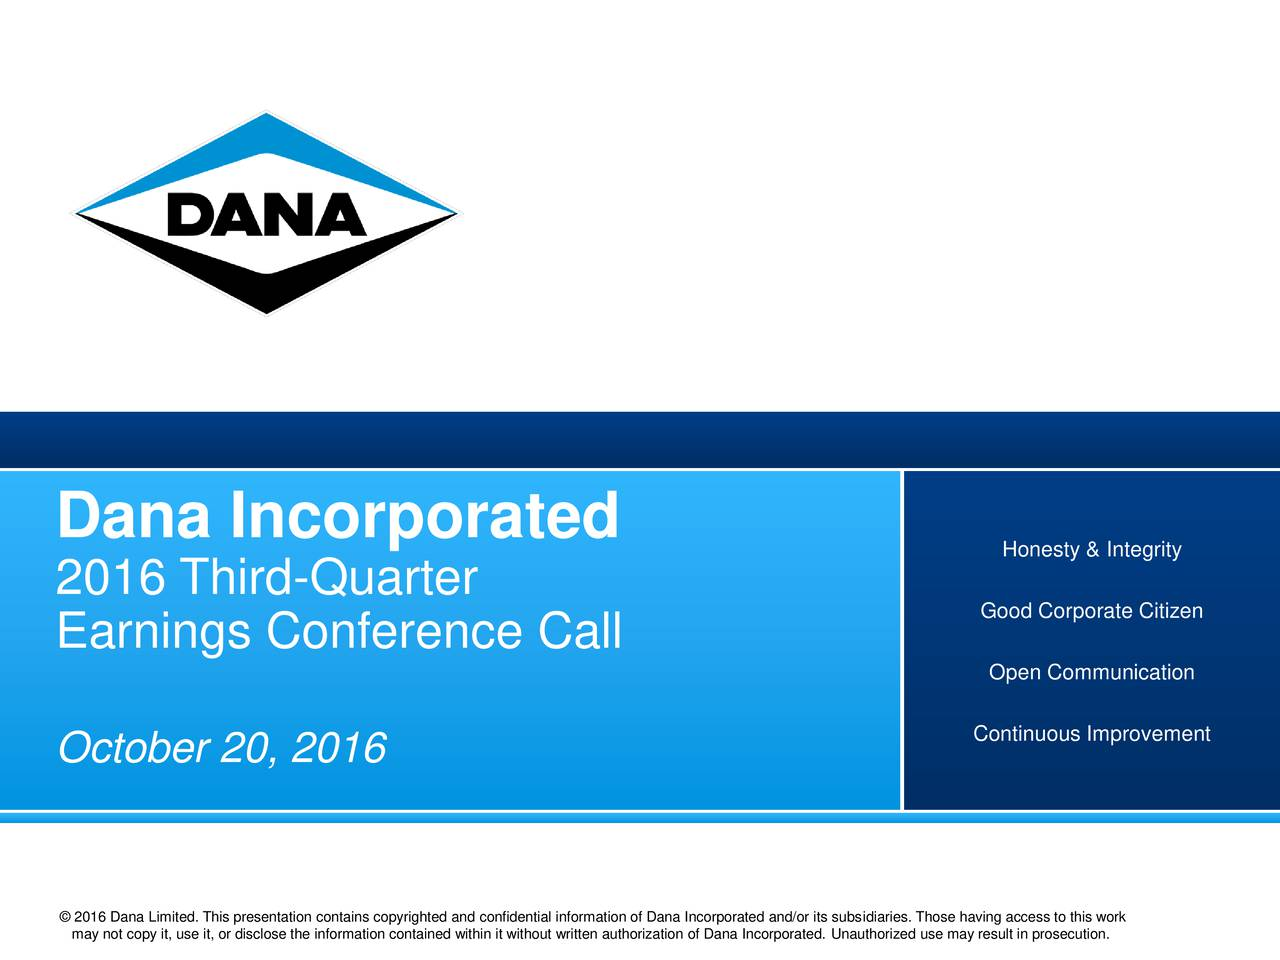 Honesty & Integrity 2016 Third-Quarter Good Corporate Citizen Earnings Conference Call Open Communication Continuous Improvement October 20, 2016 Dana 2016 copy it, use it, or disclose the information contained within it without written authorization of Dana Incorporated. Unauthorized use may result in prosecution.